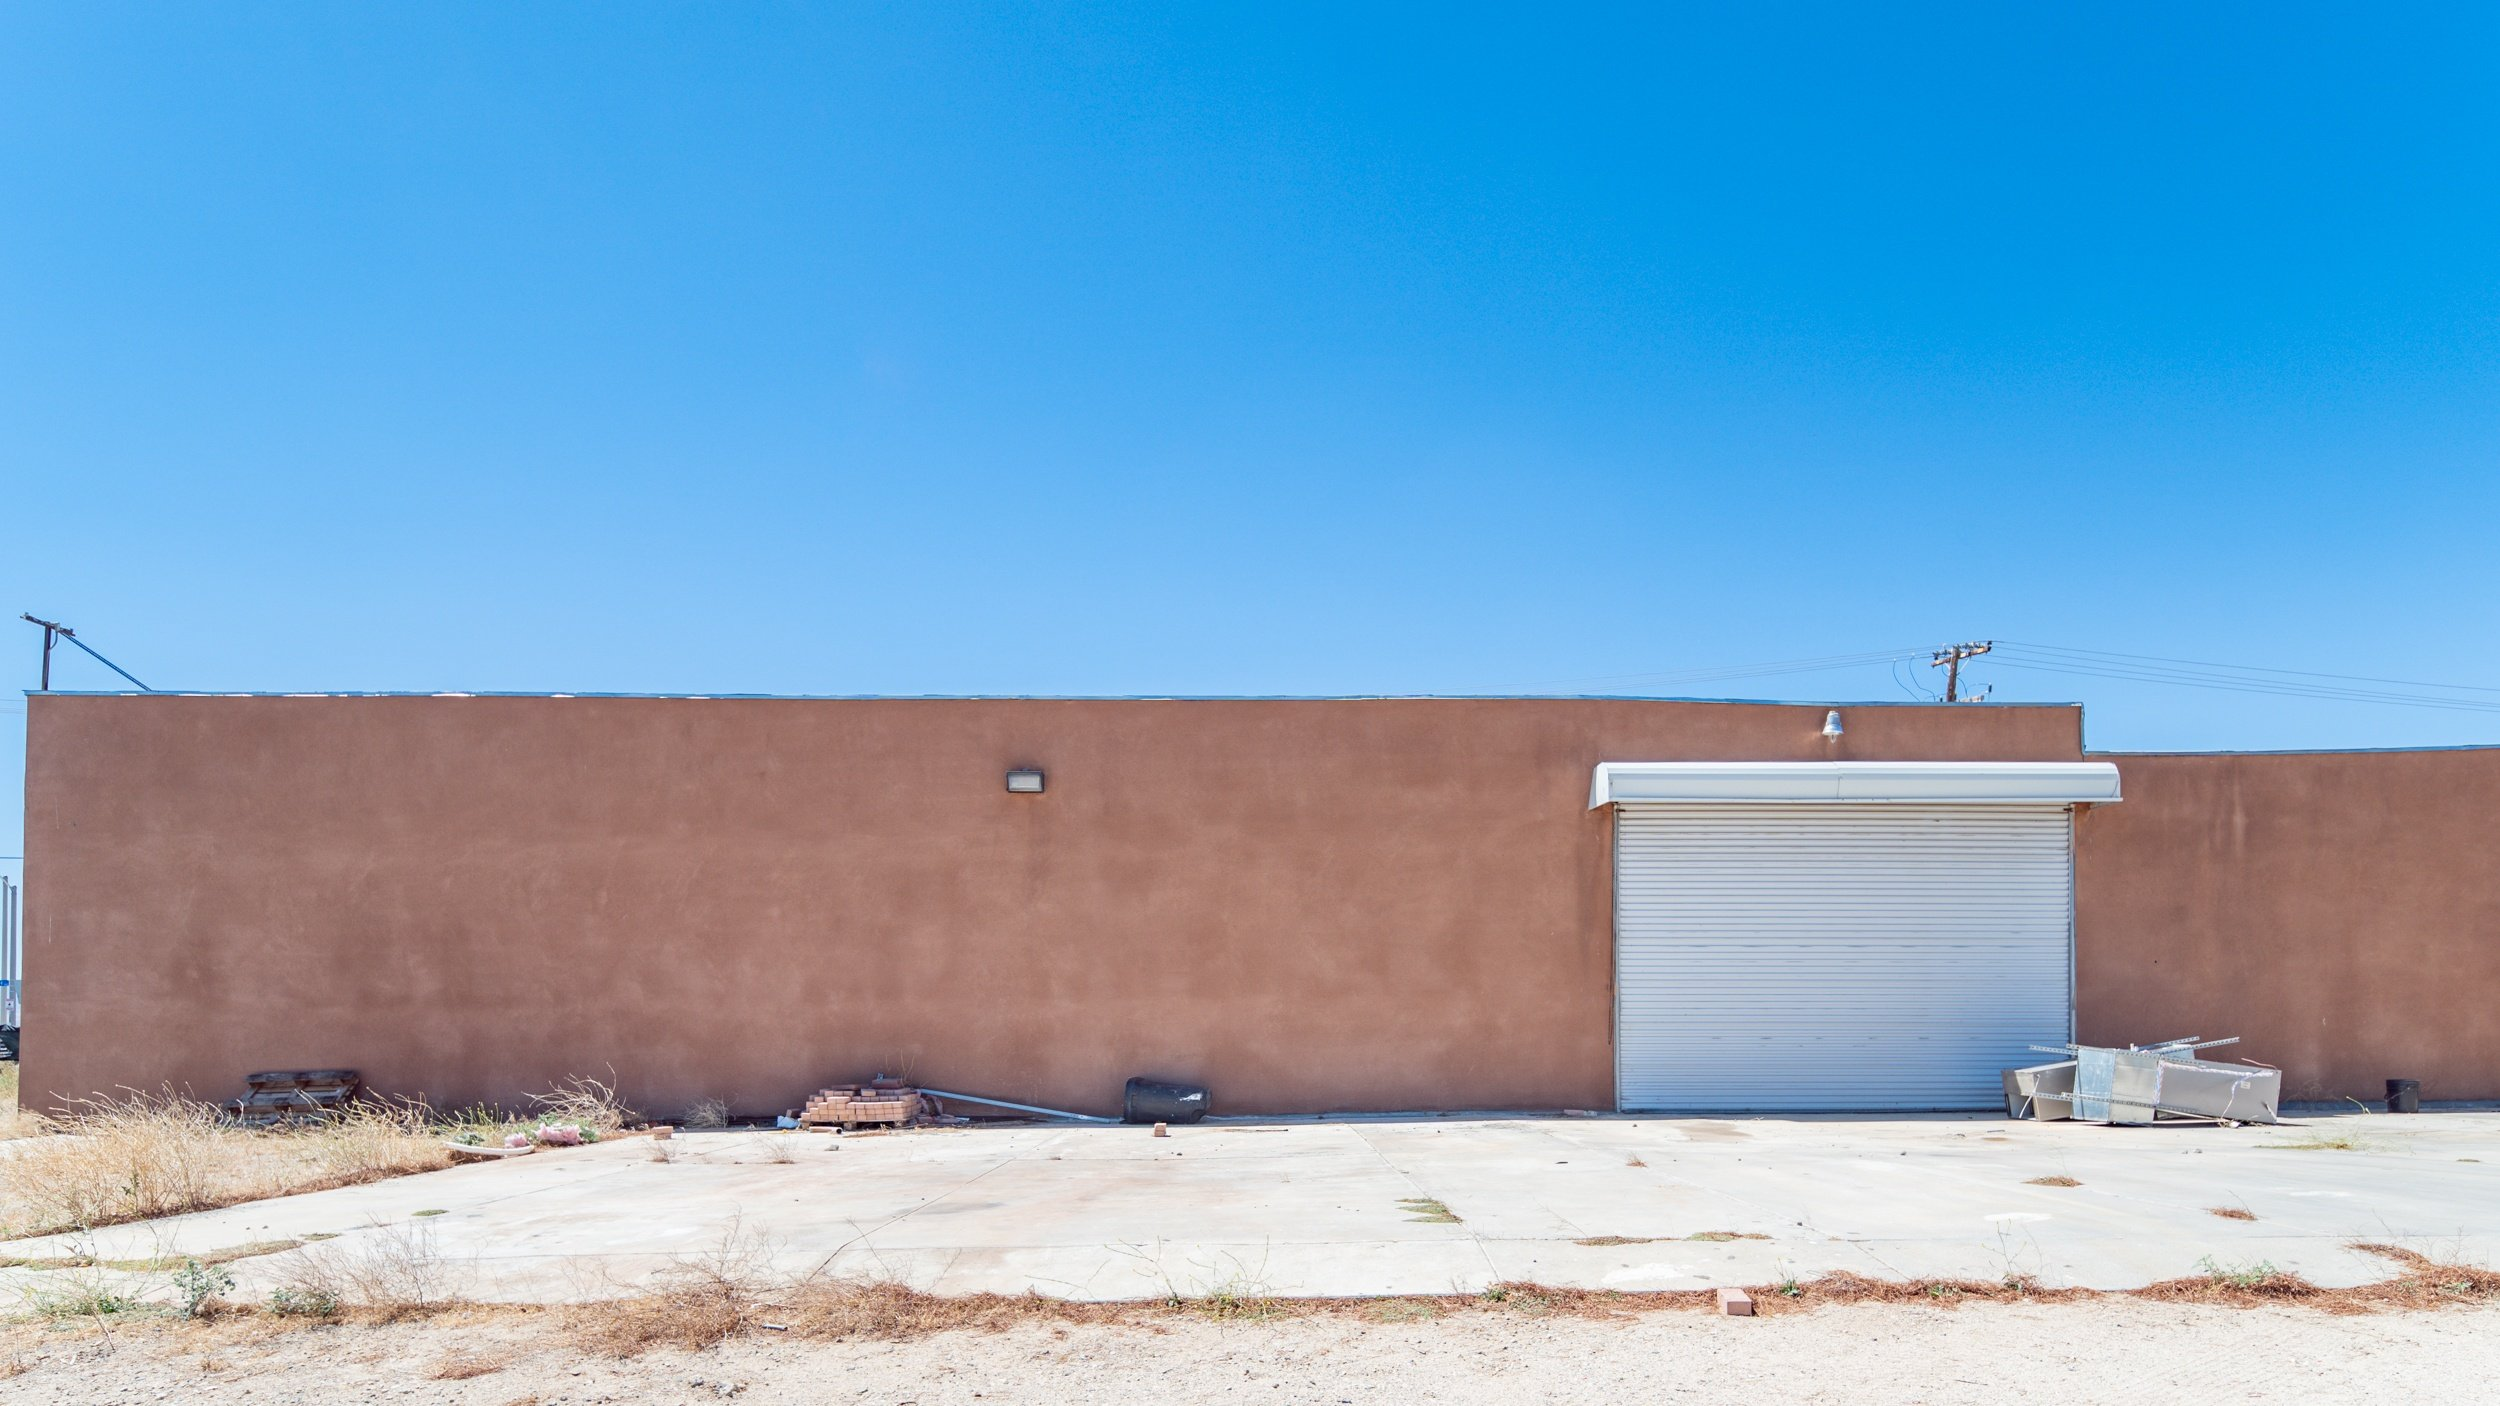 Palmdale Industrial Real Estate Building Three